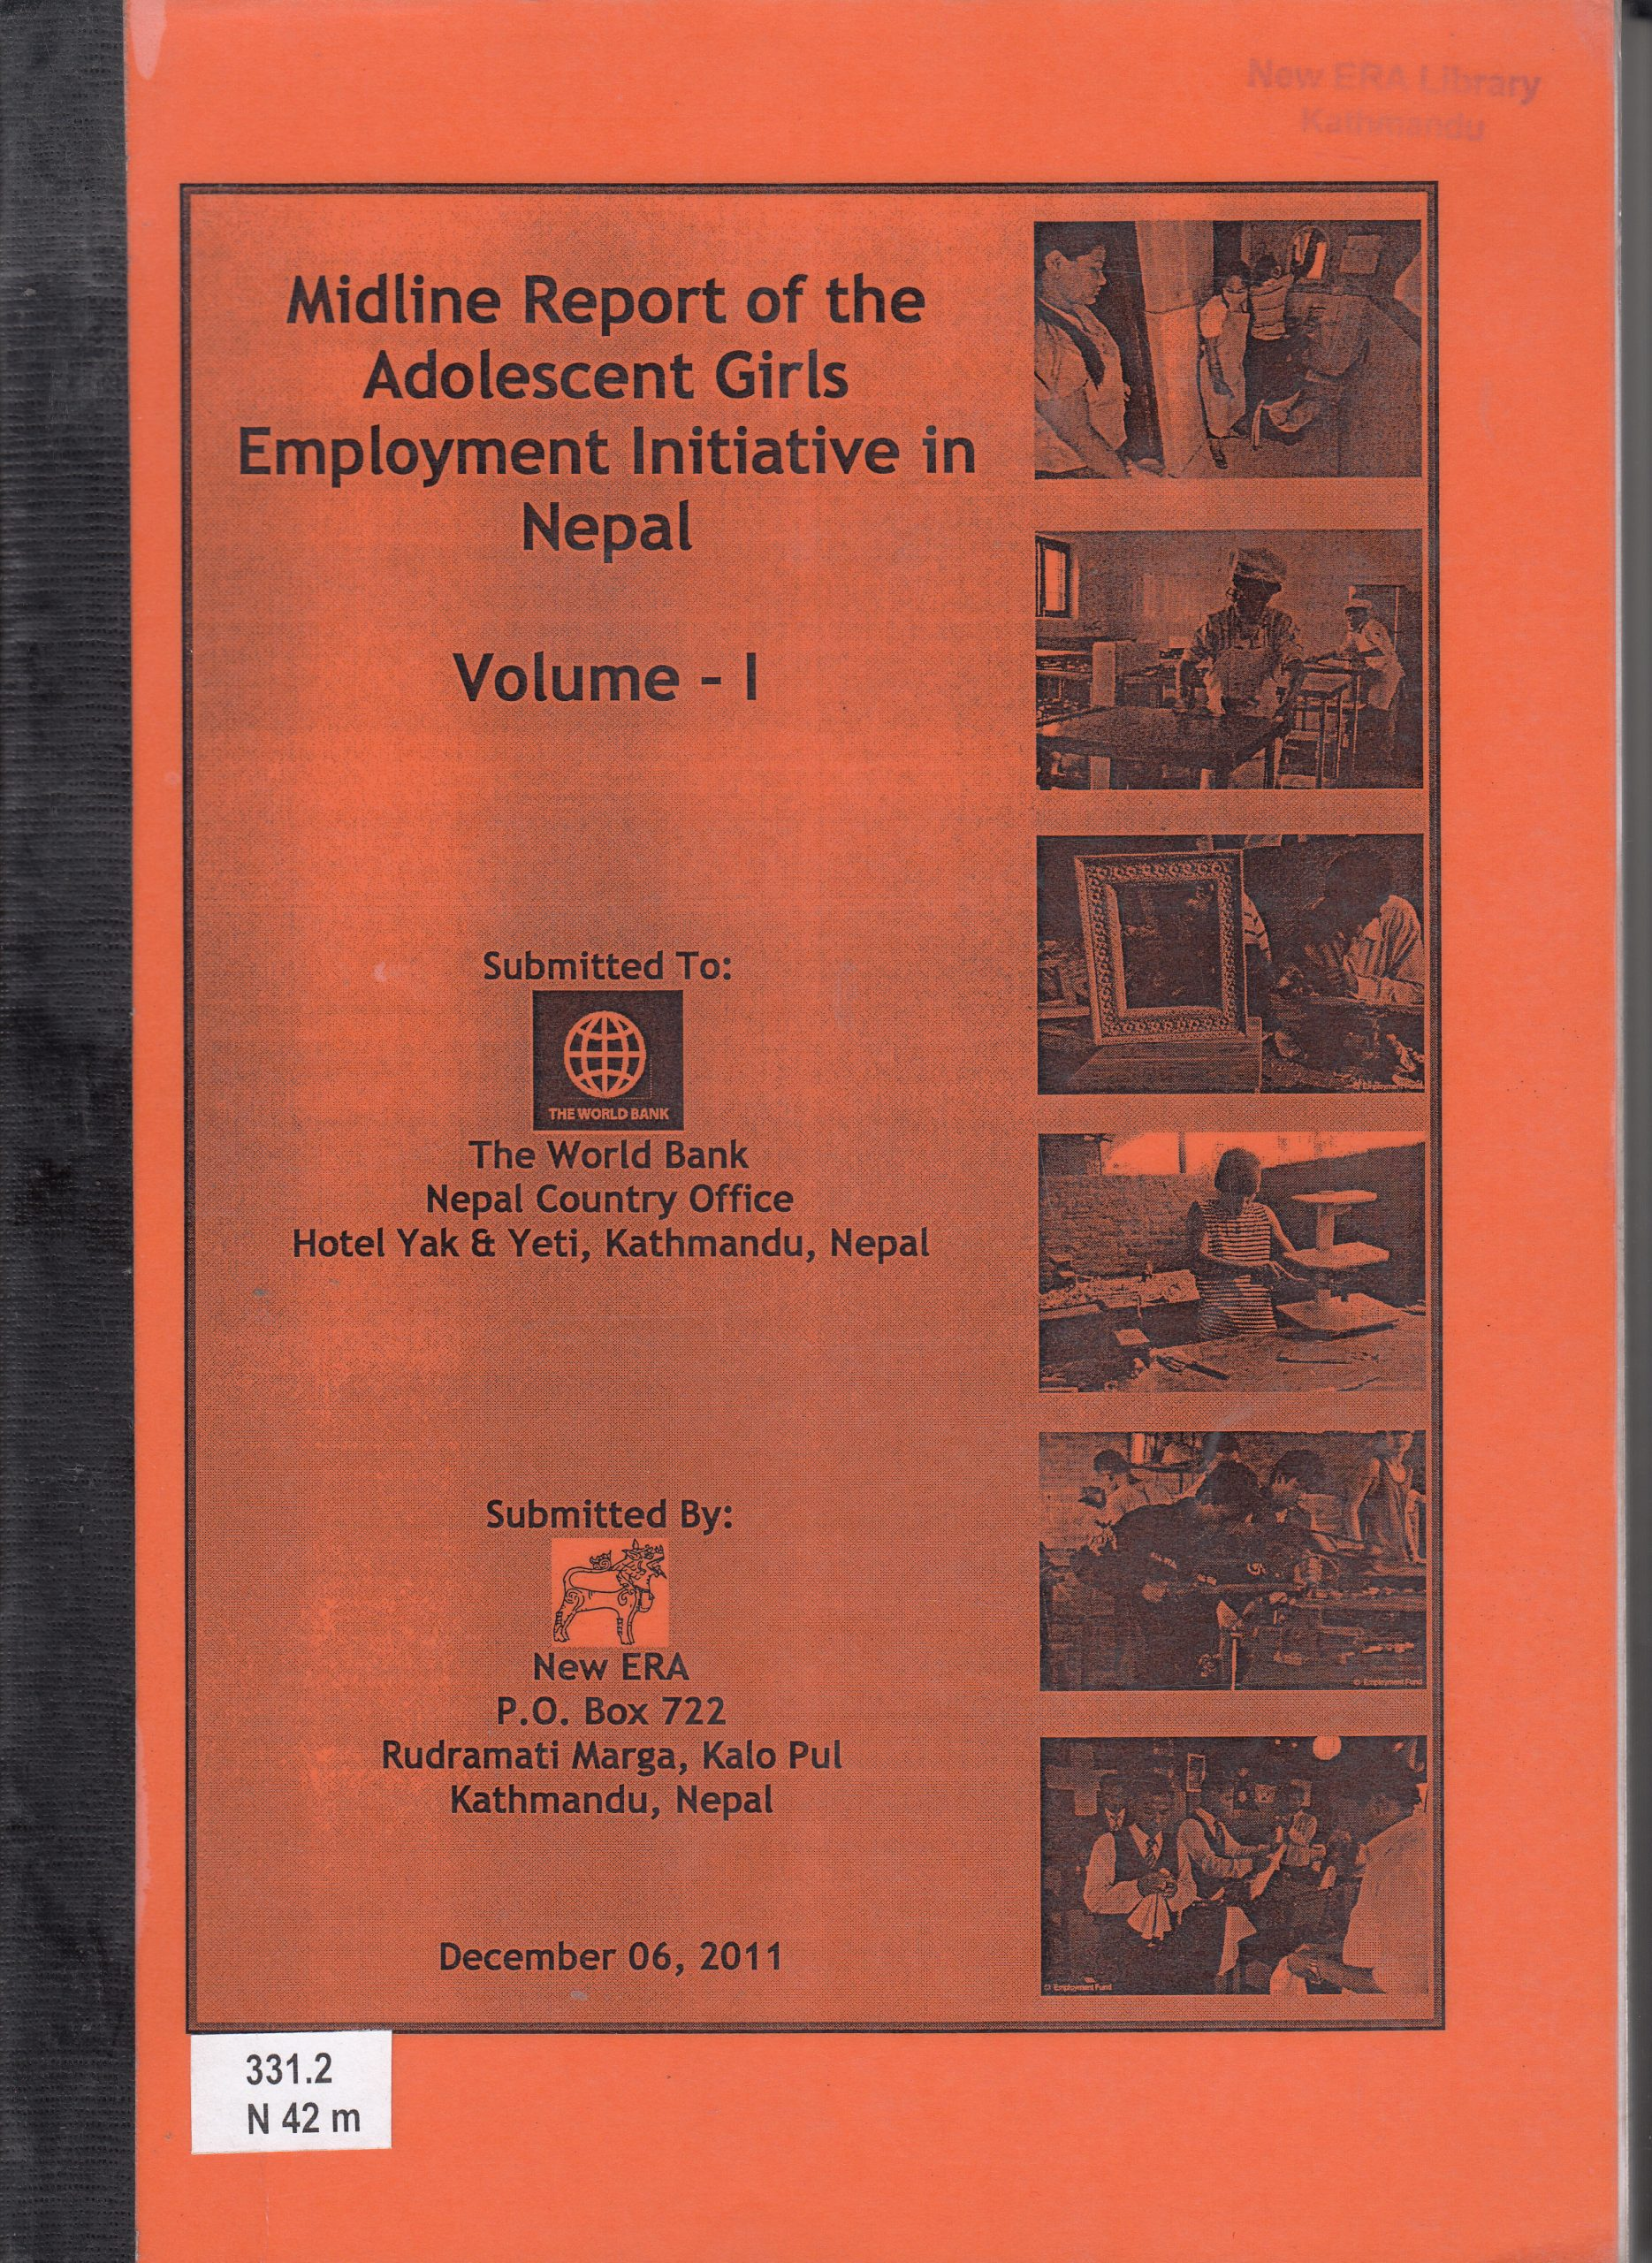 Midline Survey of the Adolescent Girls Employment Initiative (AGEI) in Nepal 2011